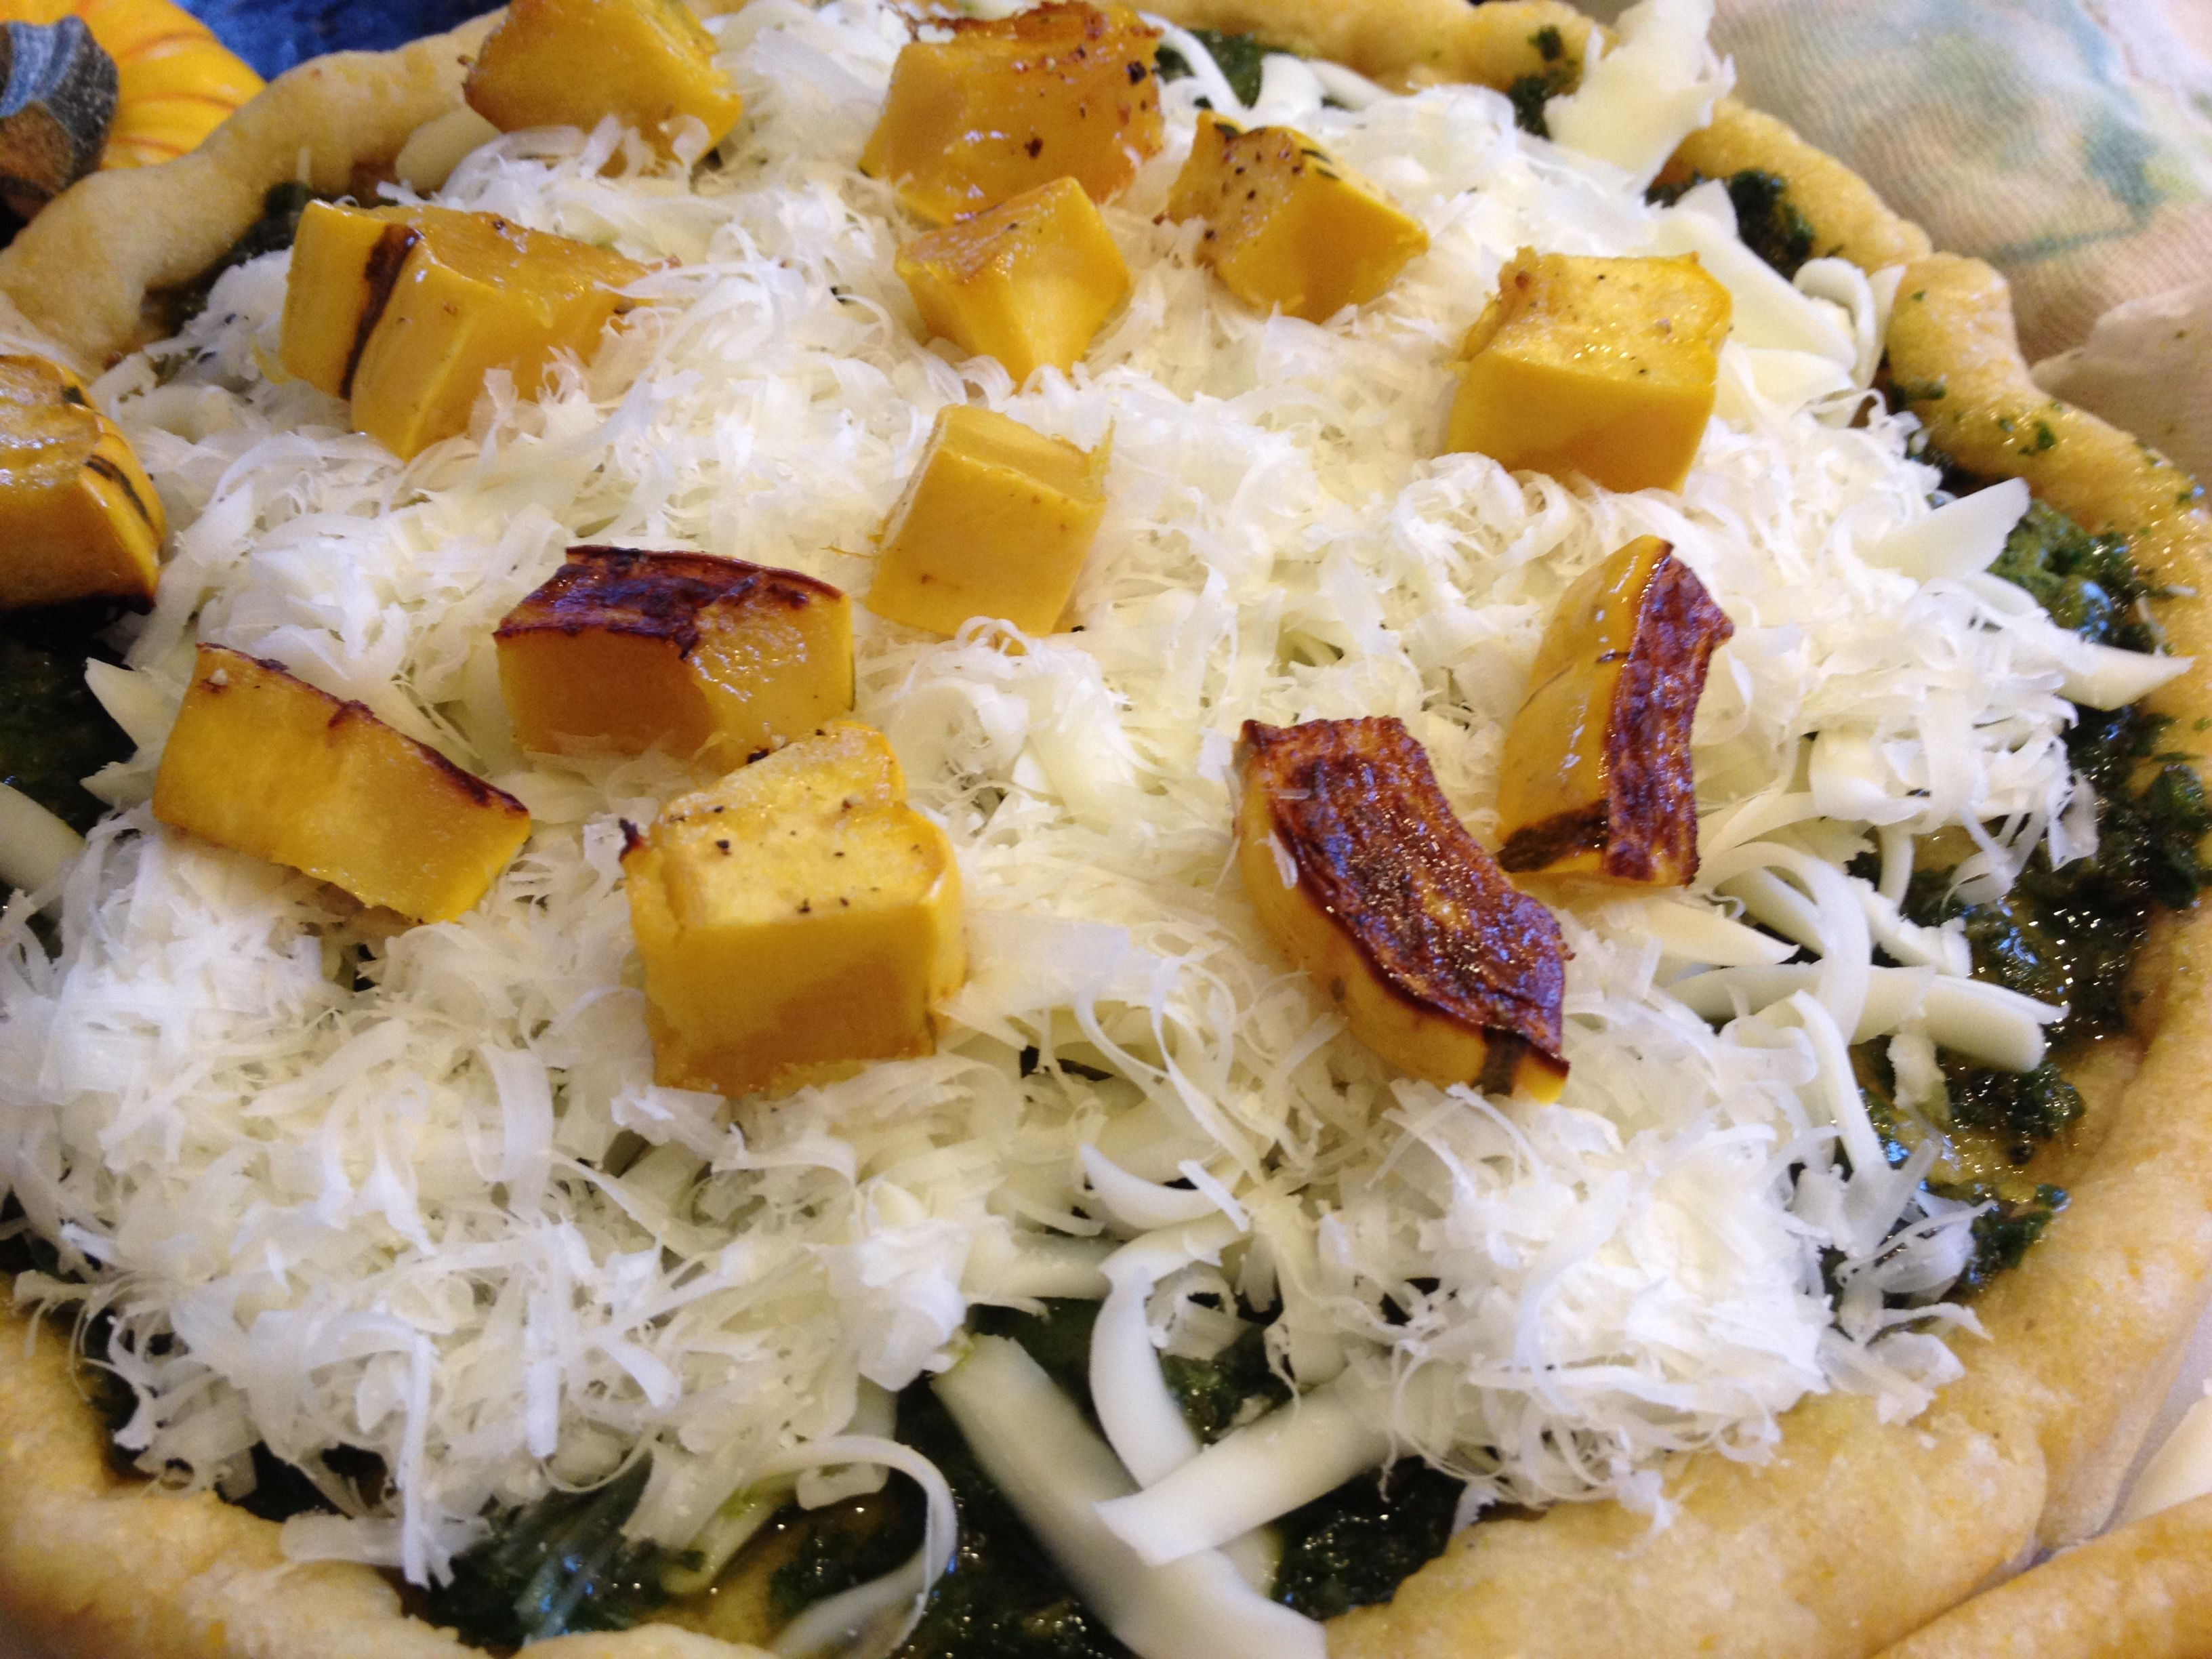 Vegetarian Pizza with Pesto and Delicata Squash